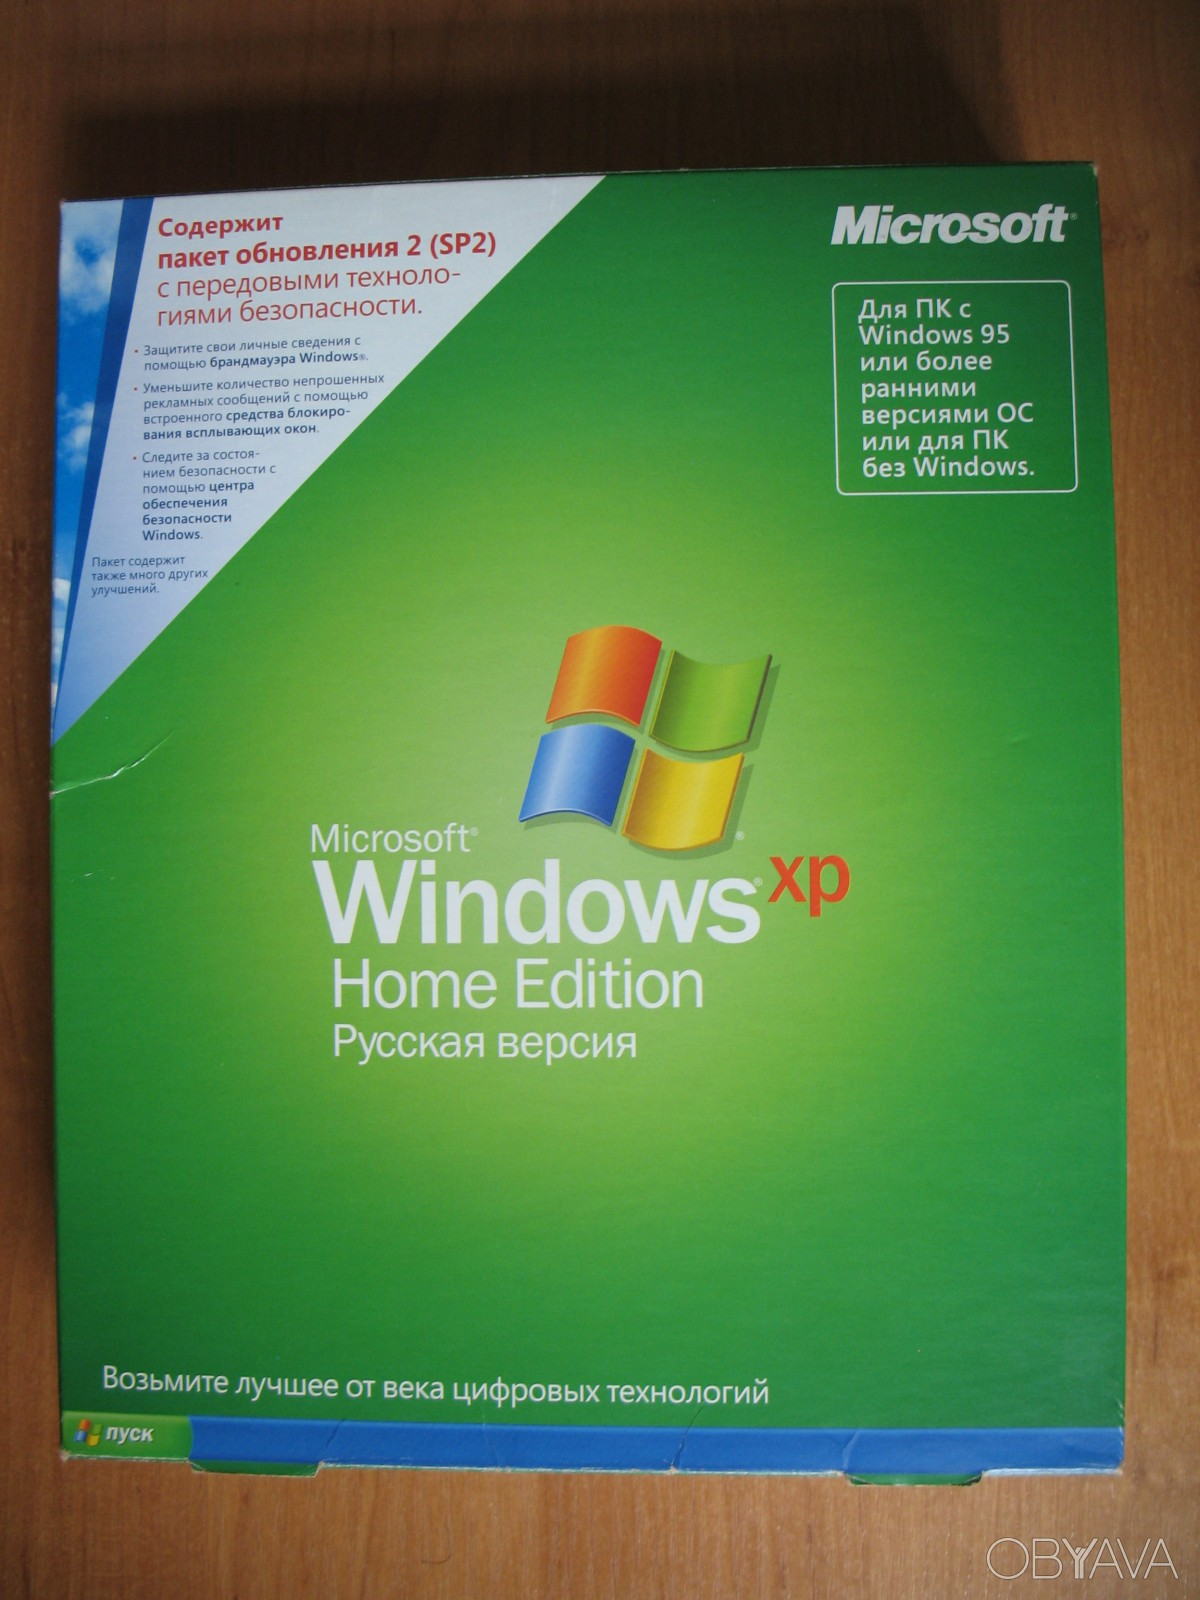 a comparison of the operatic systems of windows xp professional and windows xp home edition Windows xp the windows experience operating system is available as home and professional edition and are similar suitable for the use on standalone computers.